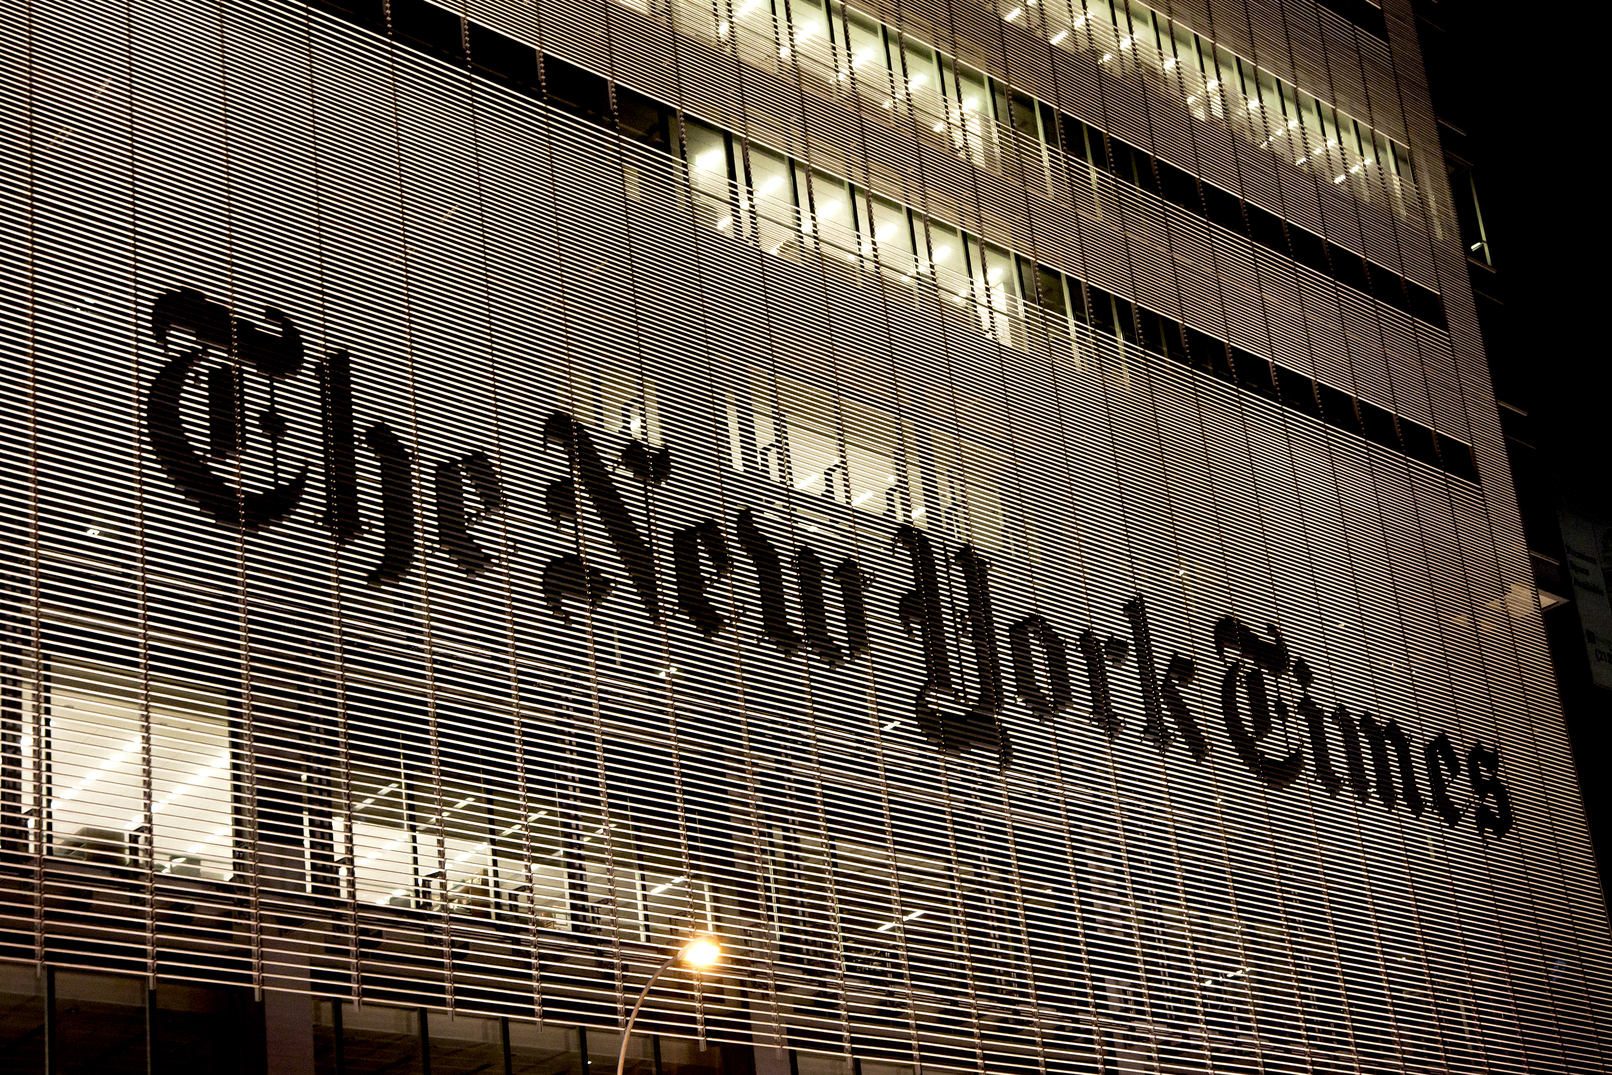 The New York Times Sues FCC Over Refusal to Respond to FOIA Requests